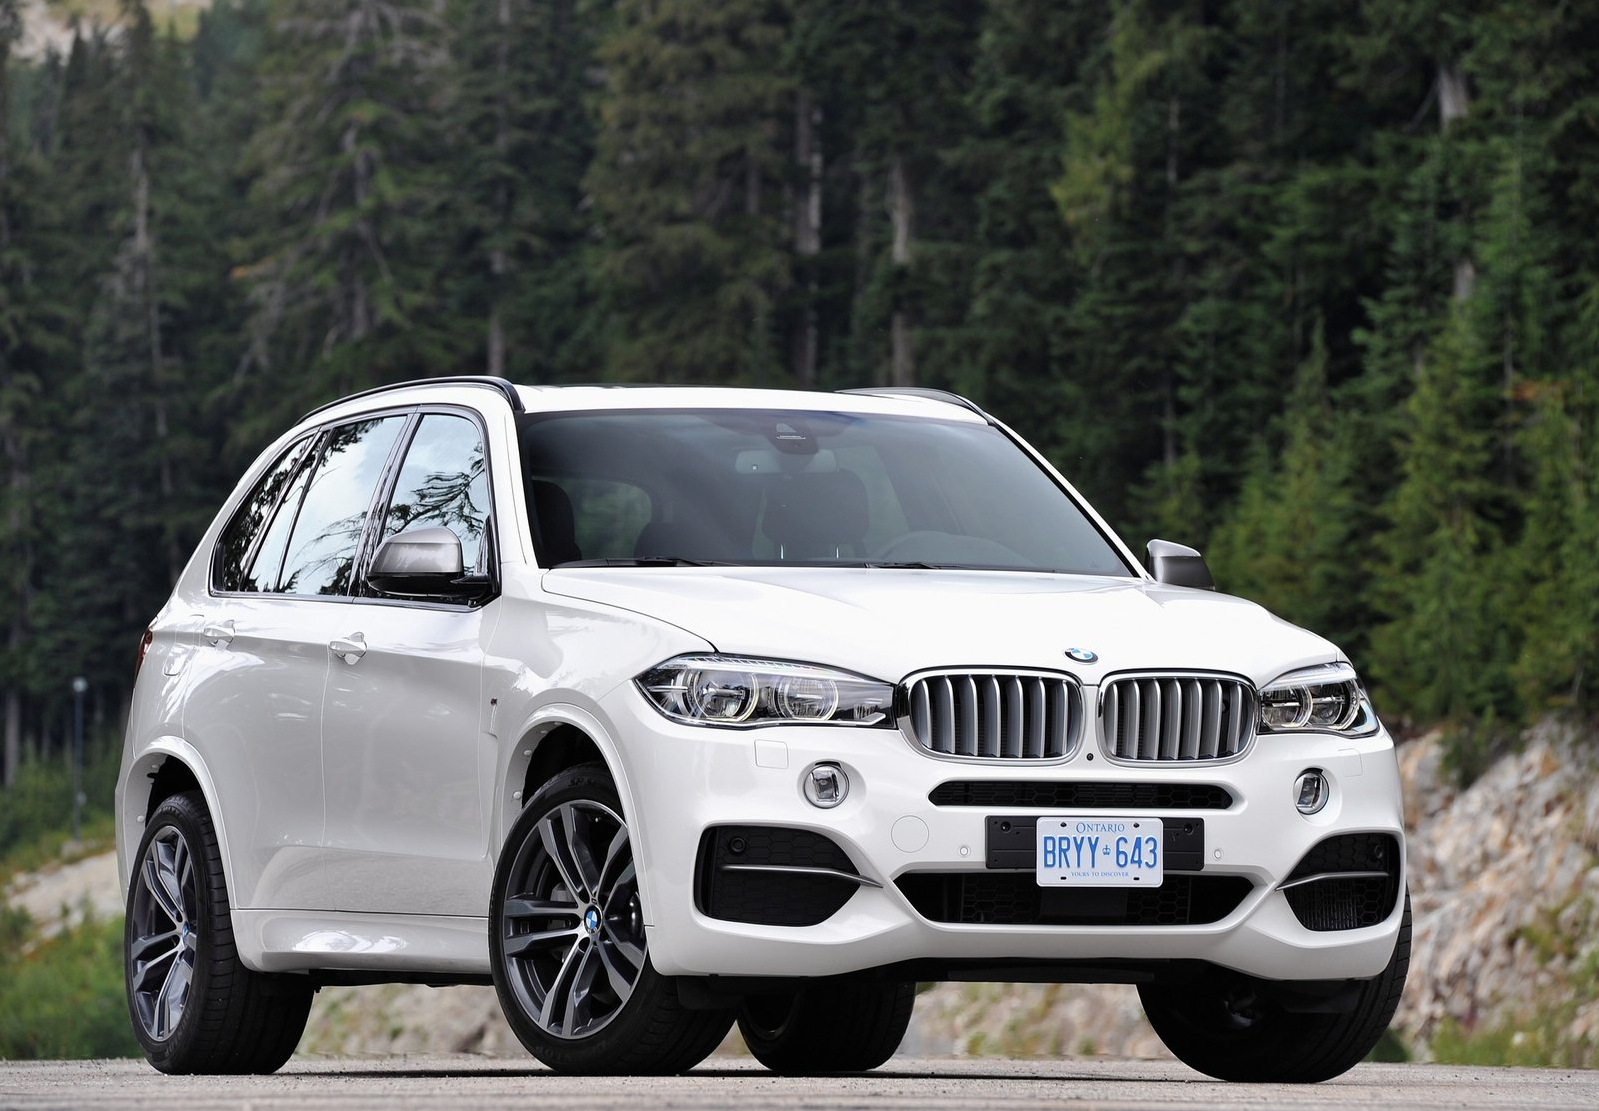 Bmw Models List >> Two Bmw Models Make It To 2014 North American Car Of The Year Short